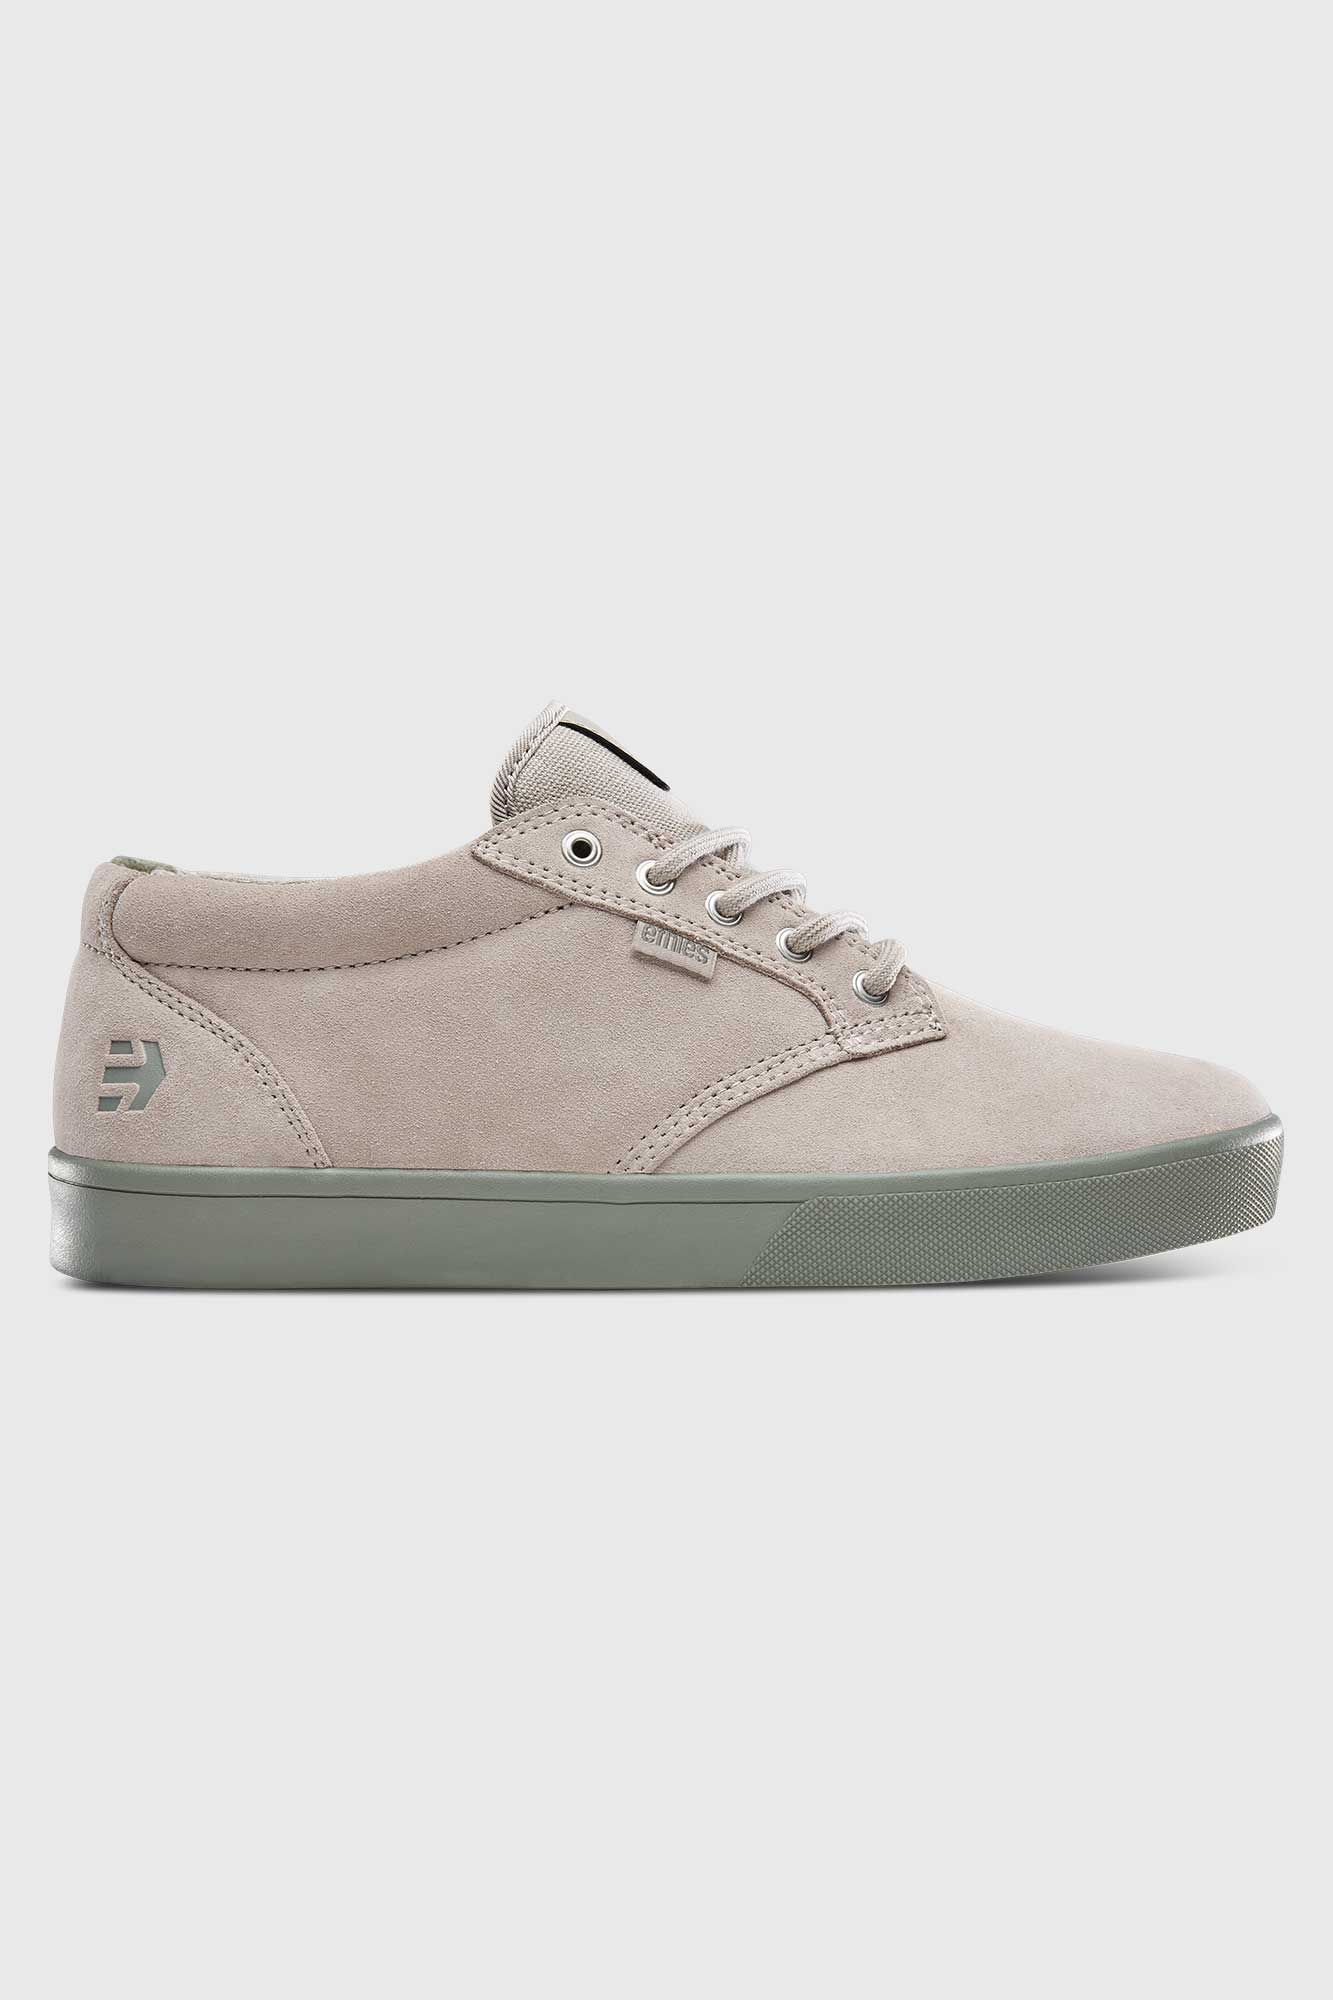 Etnies Jameson Mid Crank Shoes By Brandon Semenuk - Tan/Green